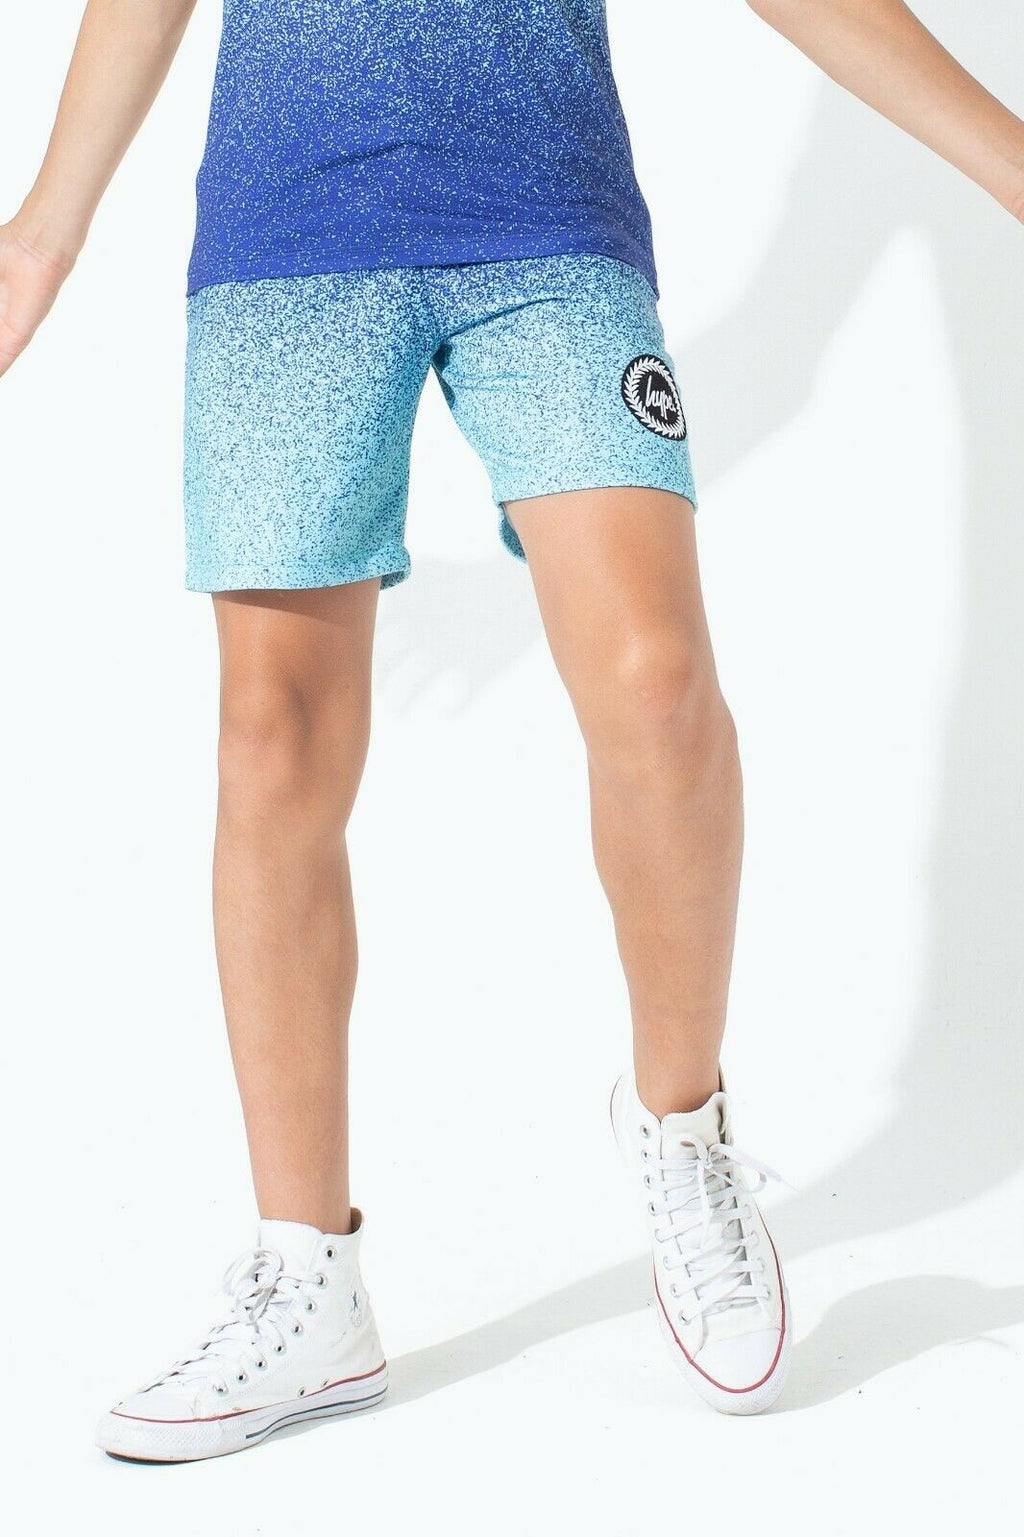 Speckle Fade Mint/Blue Kids Shorts